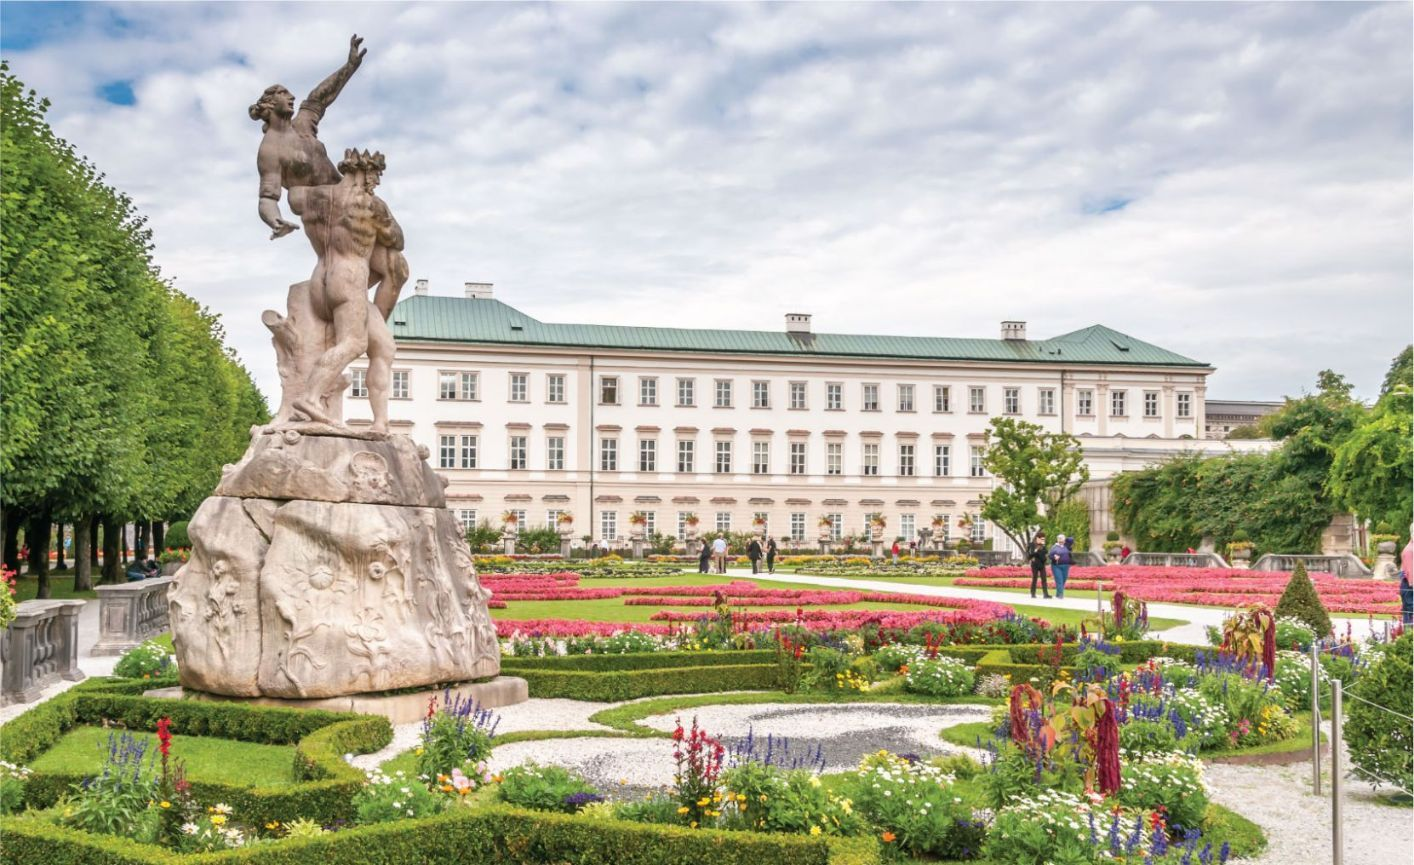 Gardens in Mirabell Palace Salzburgs Old Town